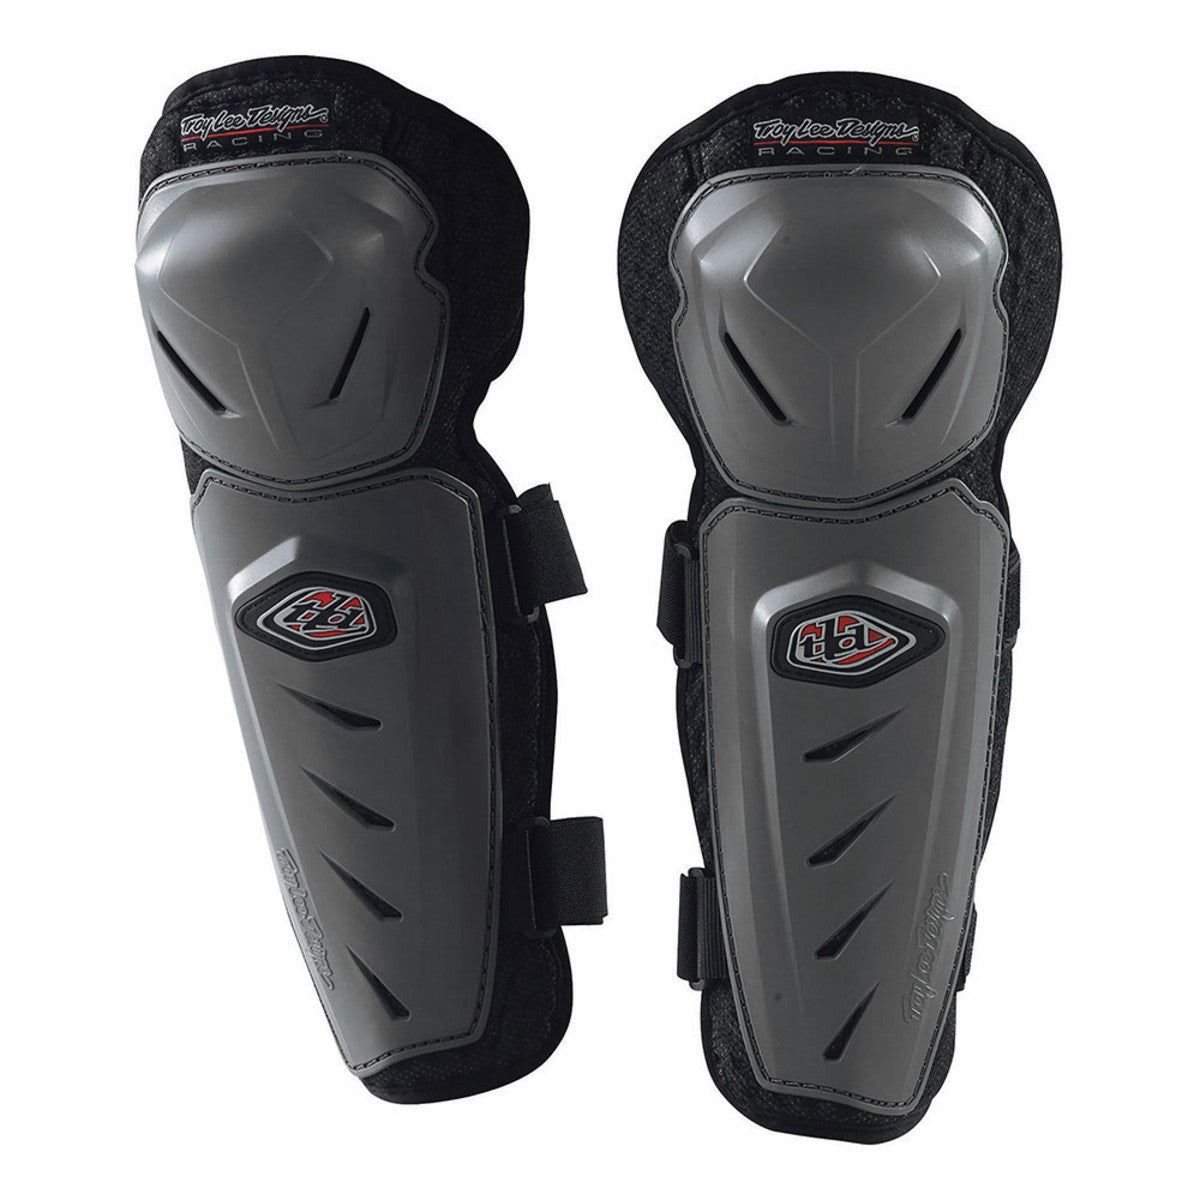 Youth Knee/Sheen Guard- Gray by Troy Lee Designs